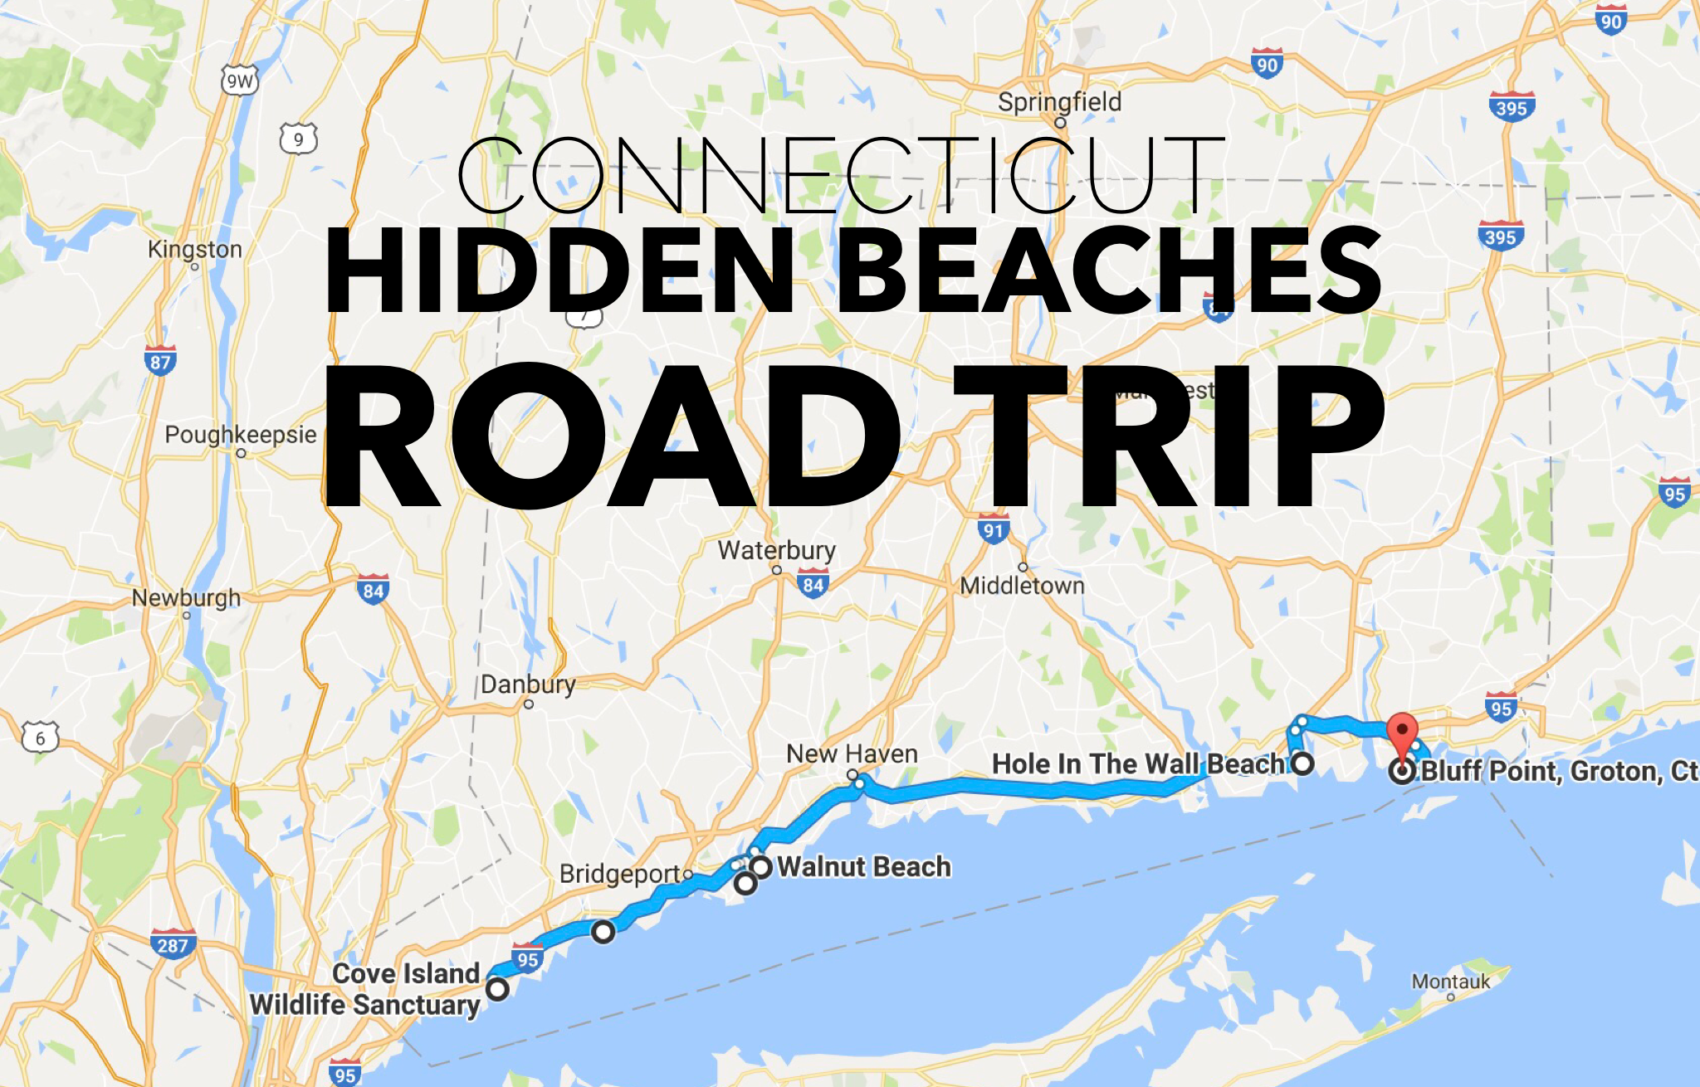 This Road Trip Will Take You To The Best Beaches In Connecticut